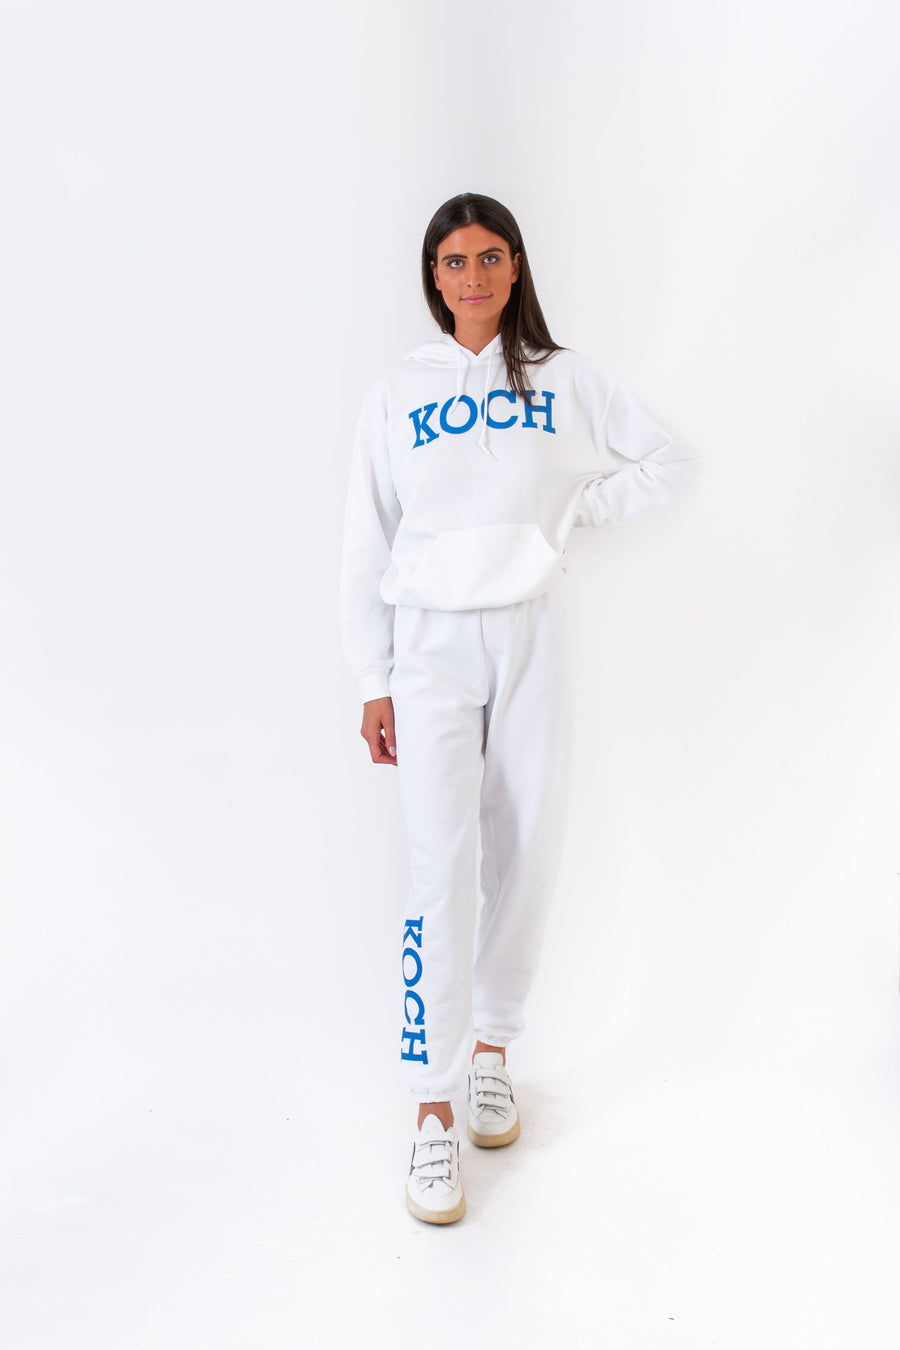 KOCH SWEATPANTS *LIMITED*EDITION*